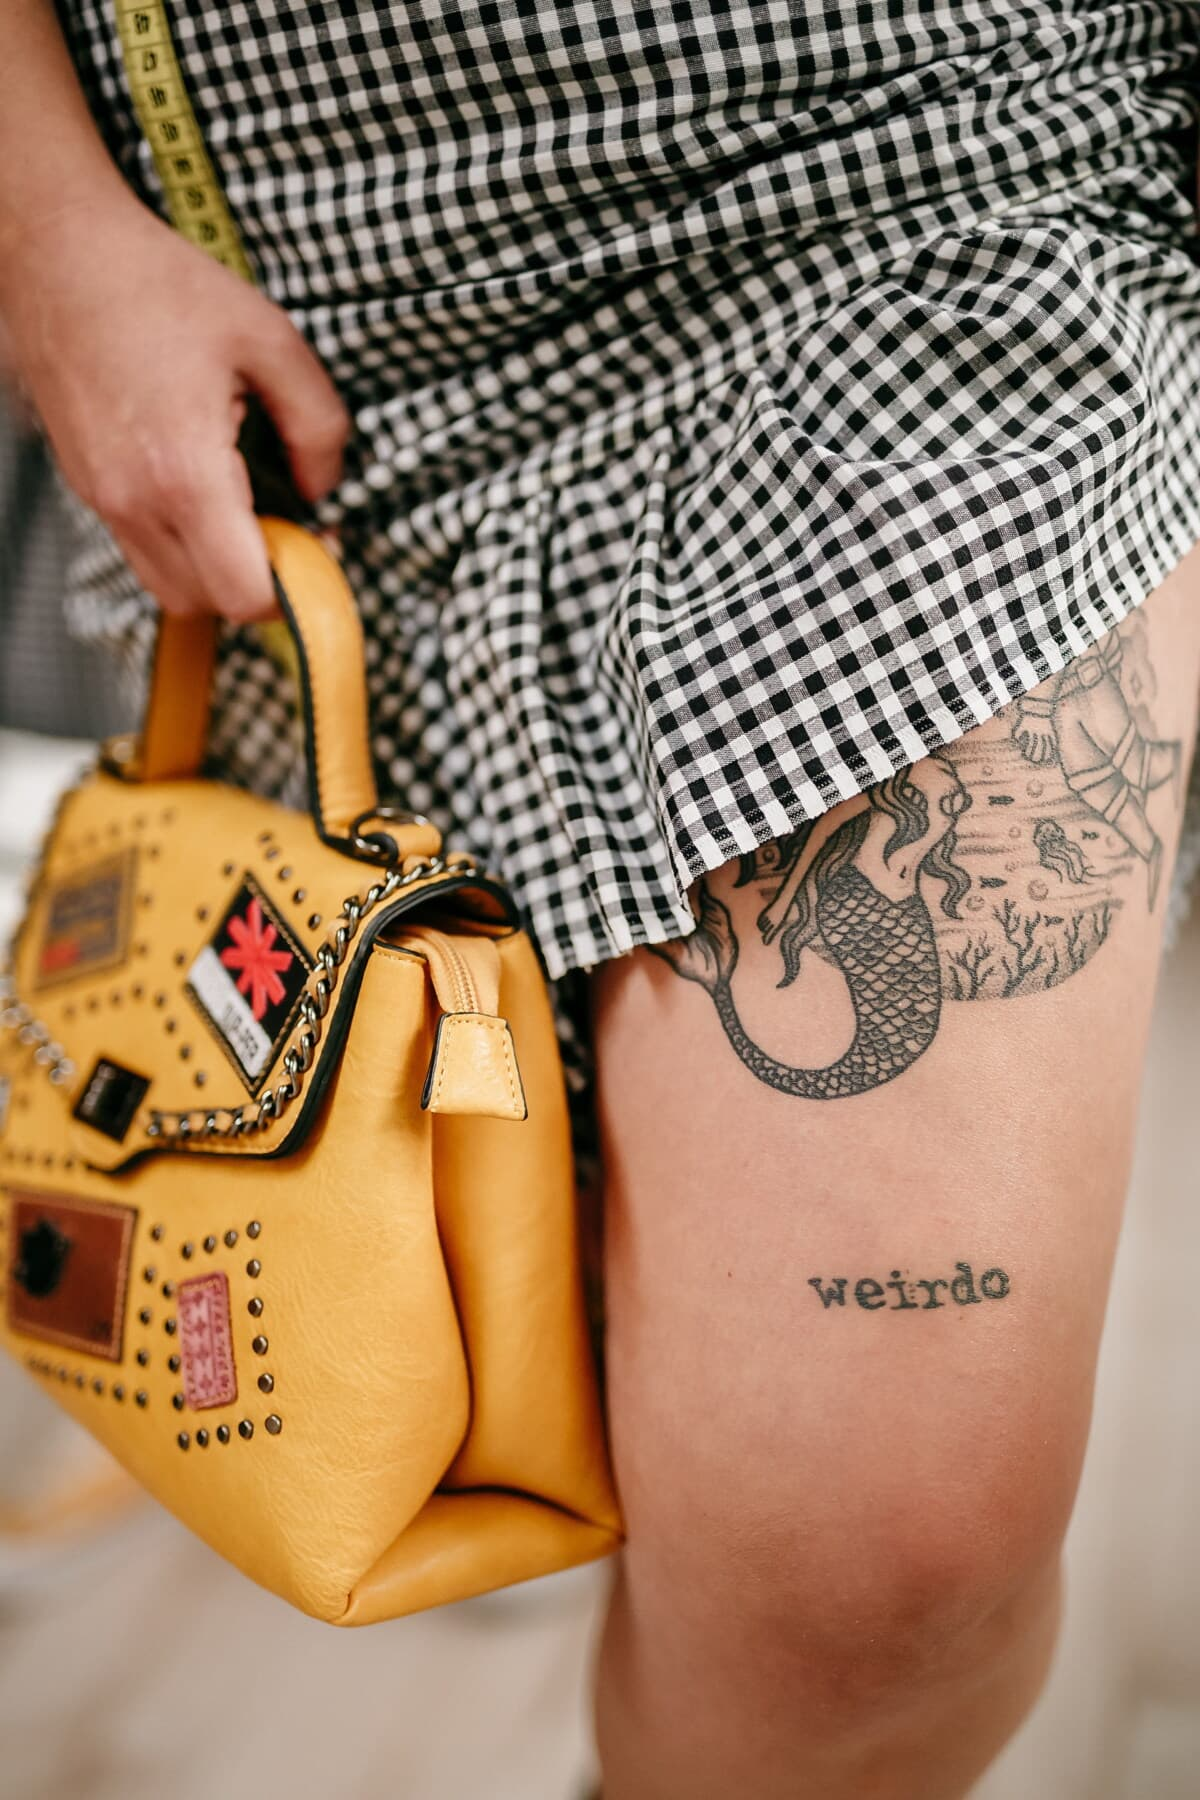 tattoo, young woman, knee, free style, lifestyle, fashion, glamour, woman, body, retro